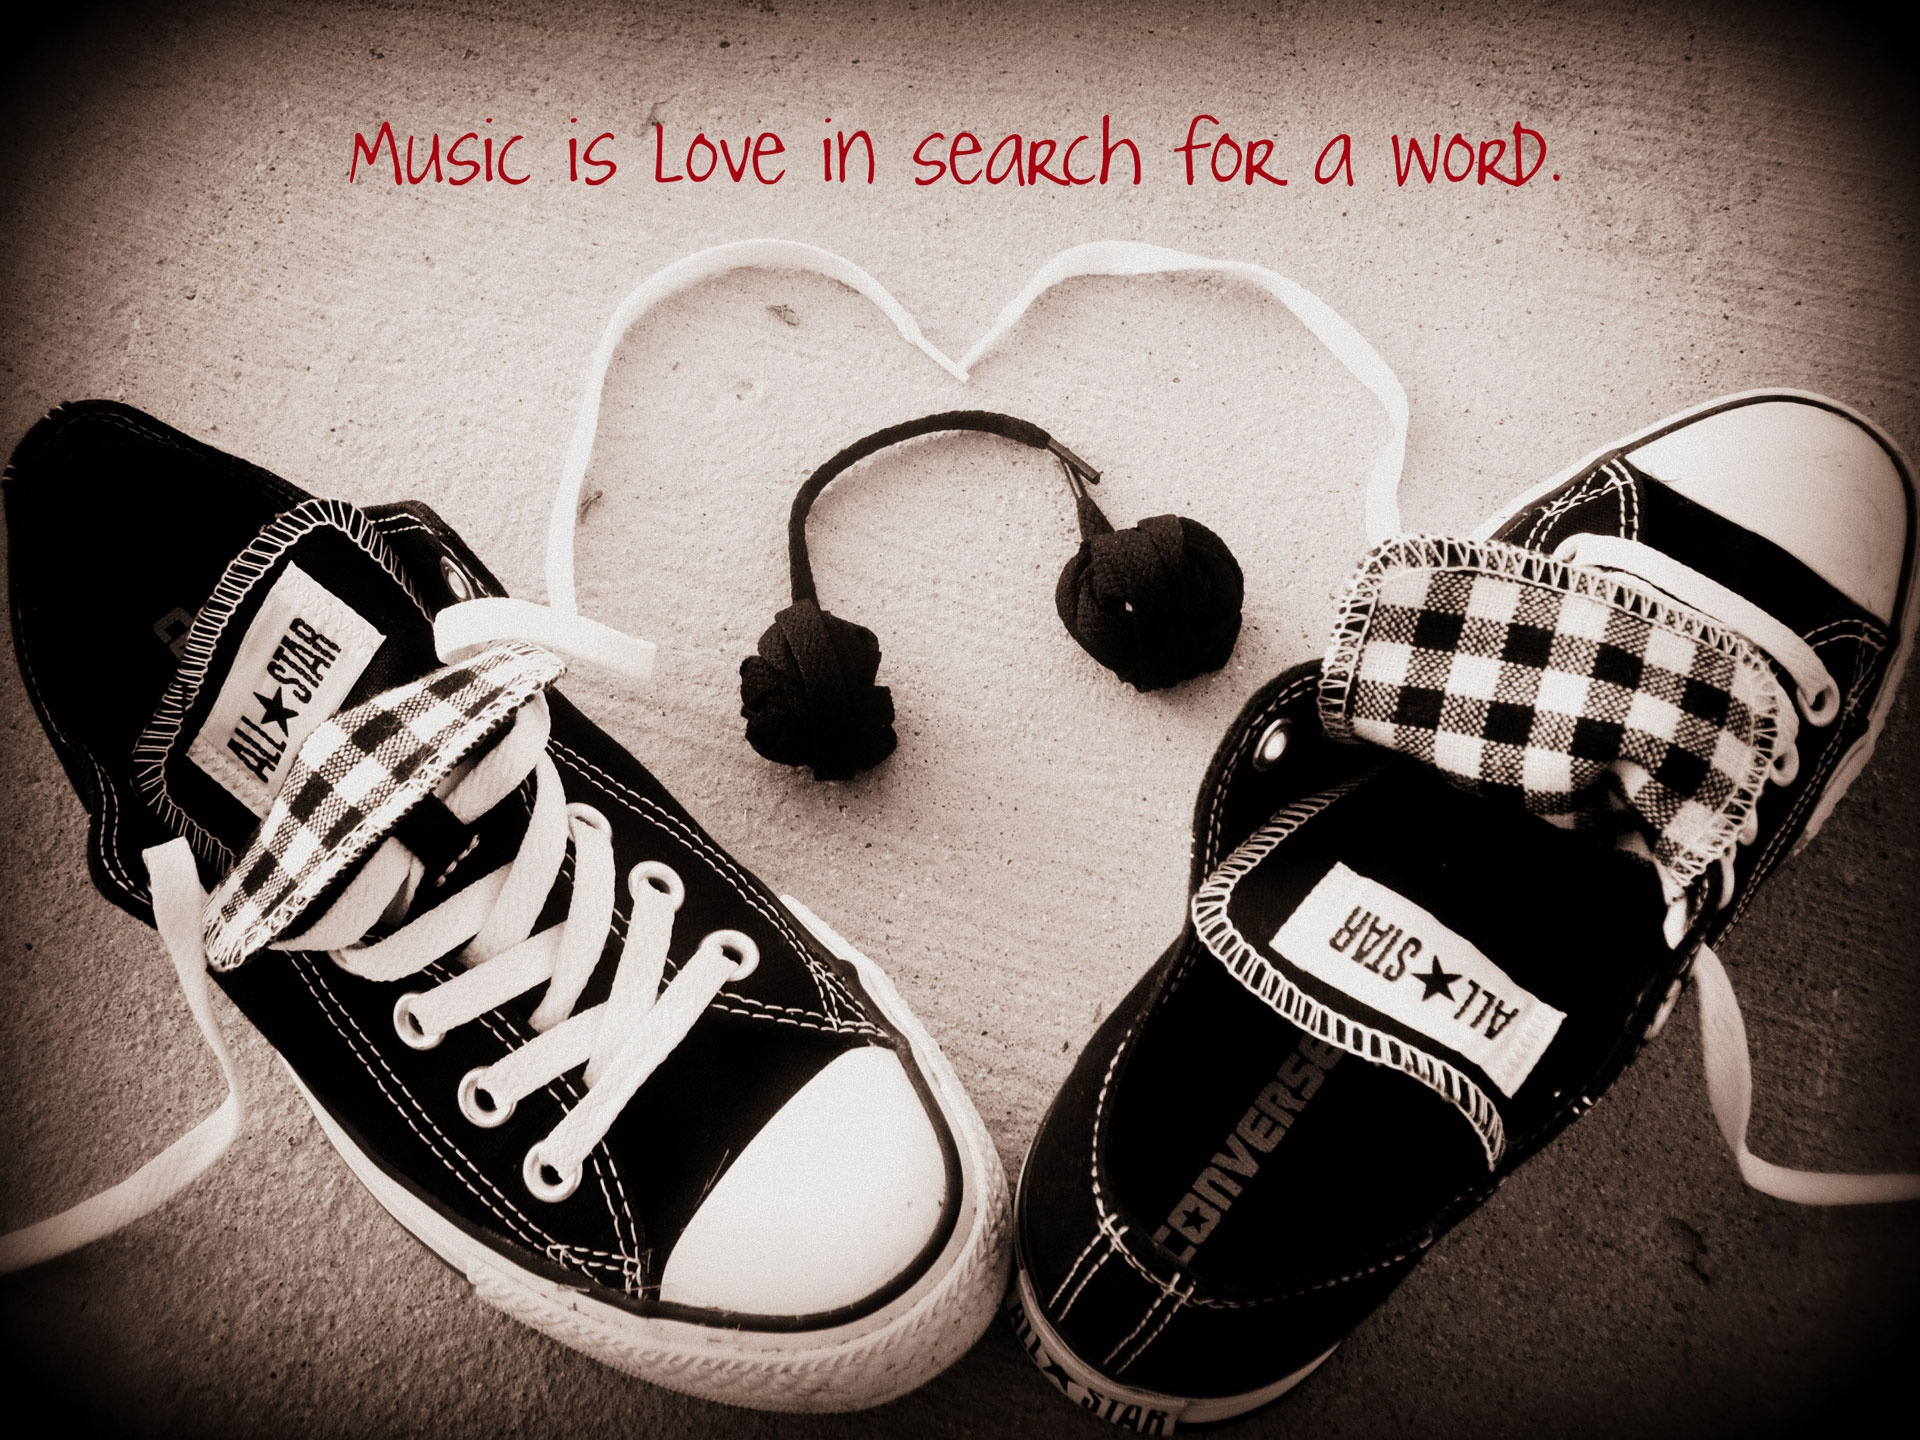 1920x1440 Music Is Love wallpaper music and dance wallpapers